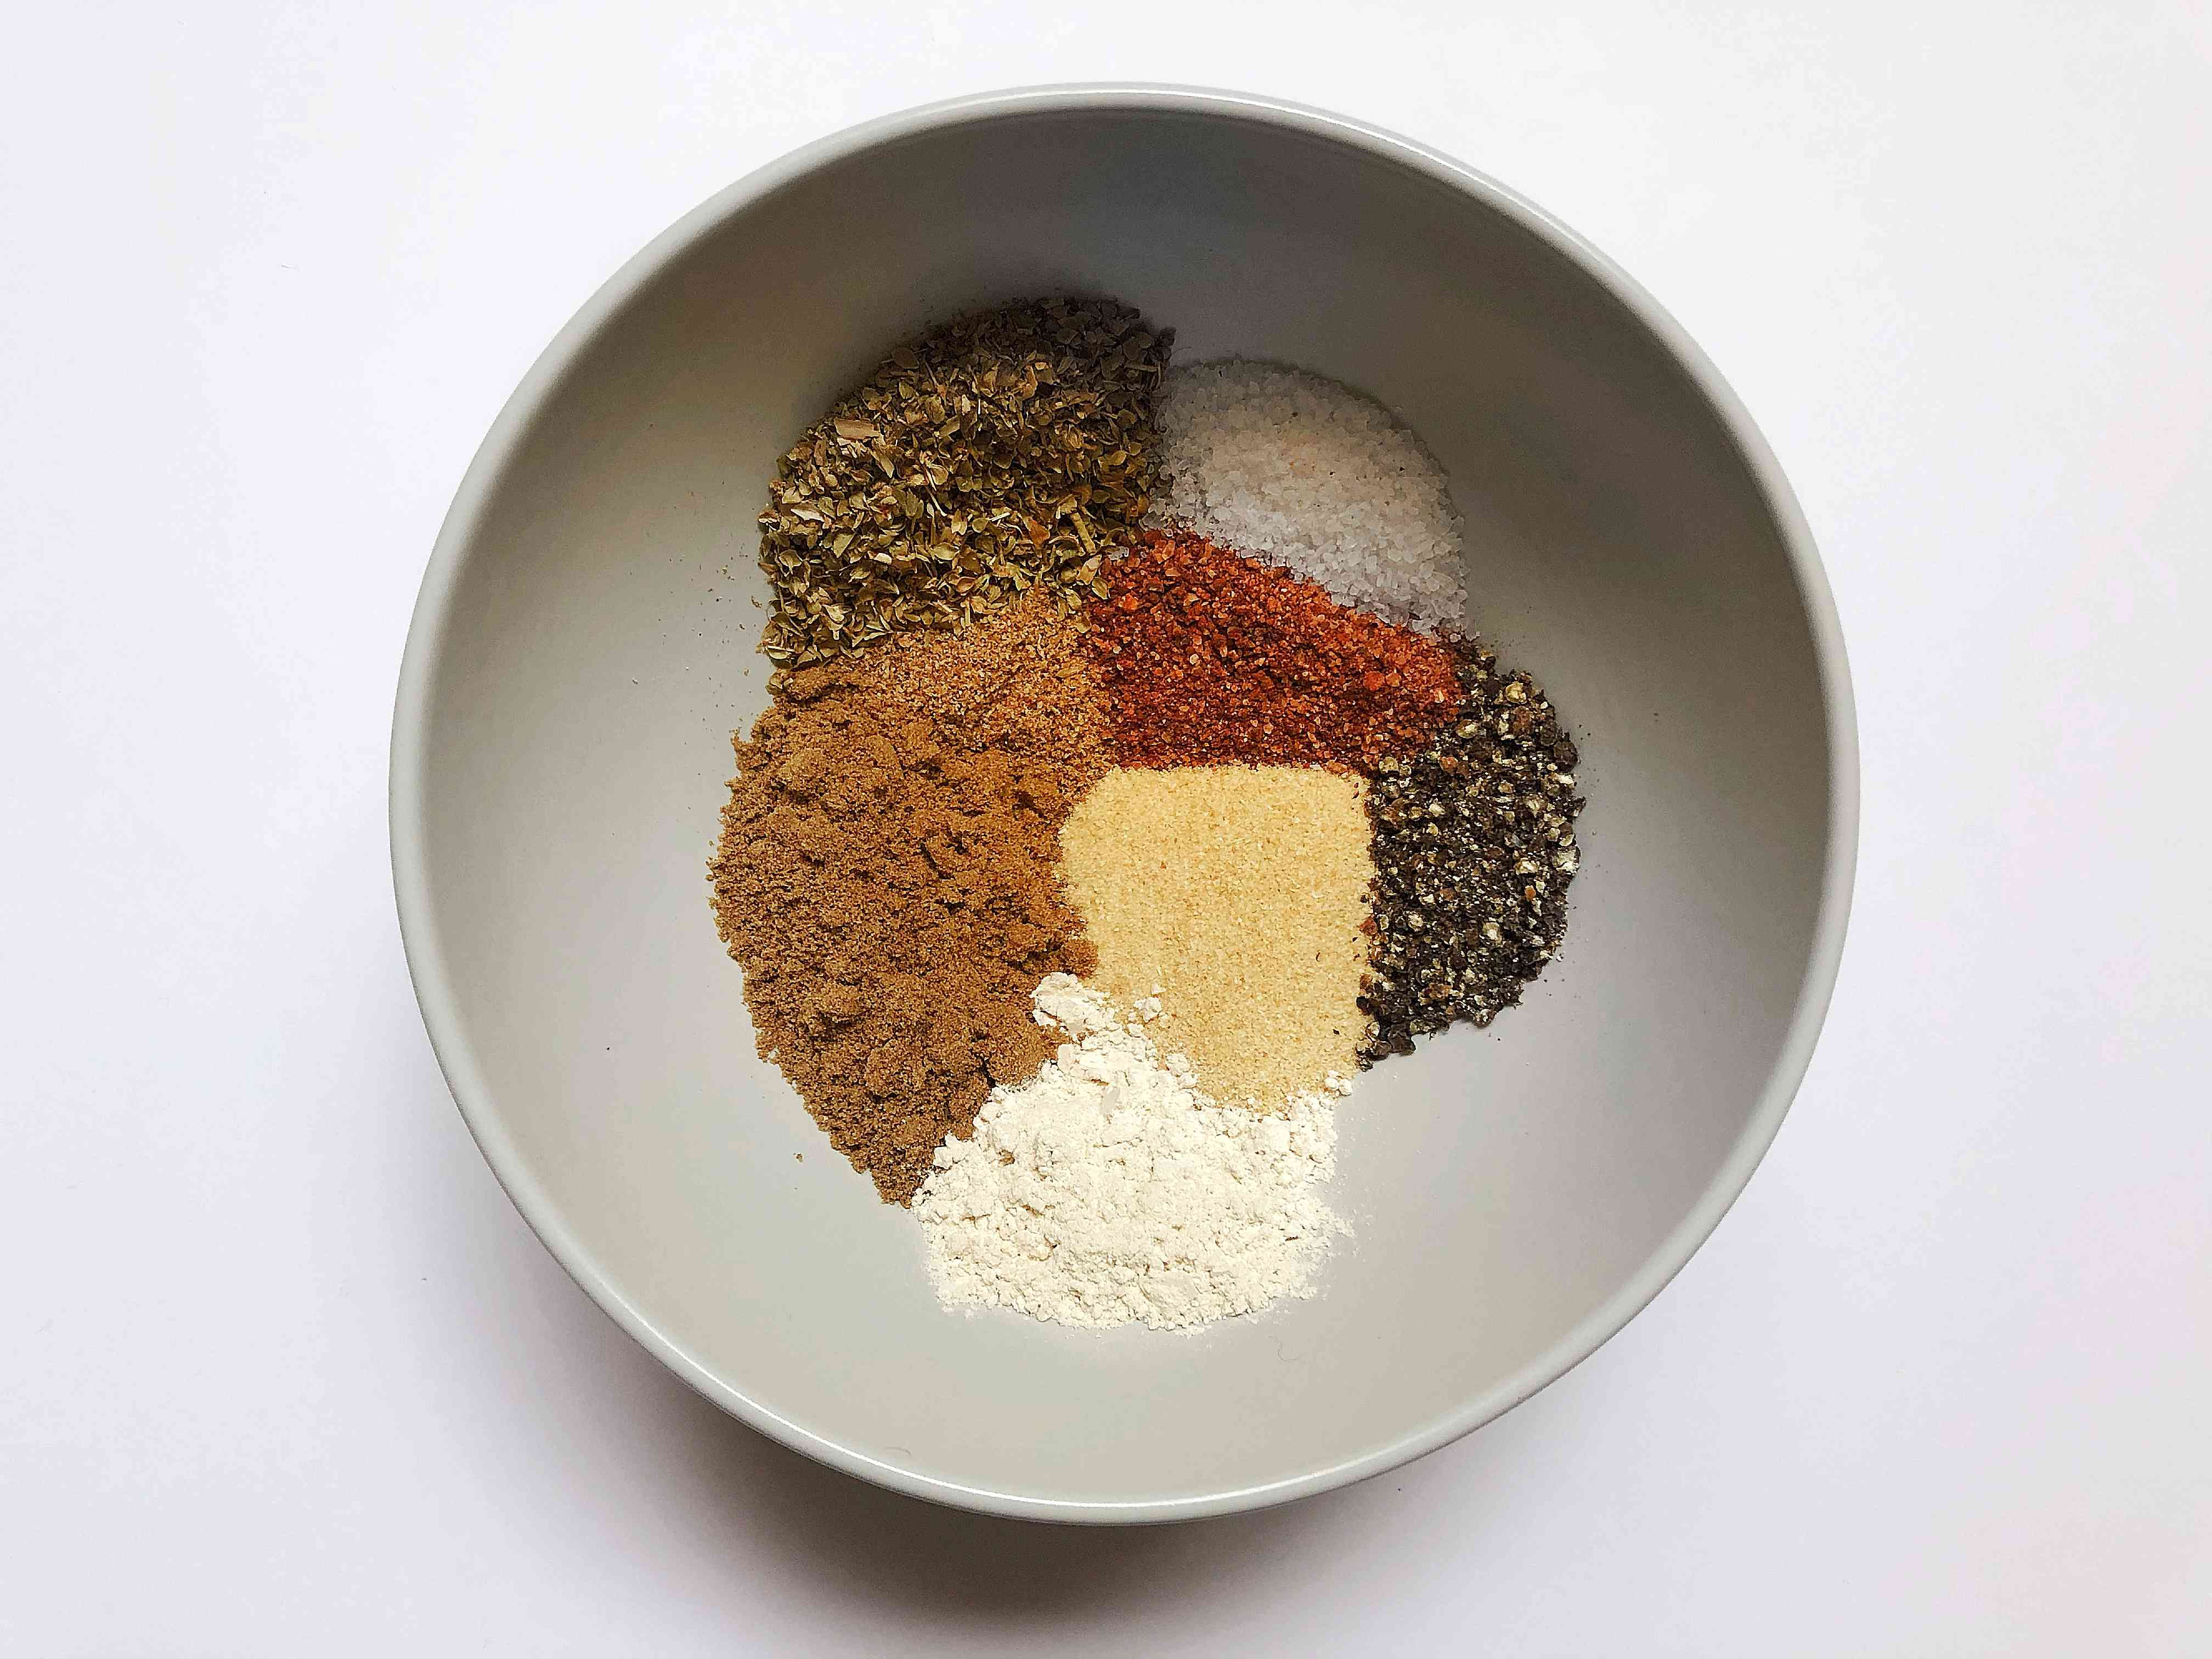 spices for homemade sazon seasoning in bowl